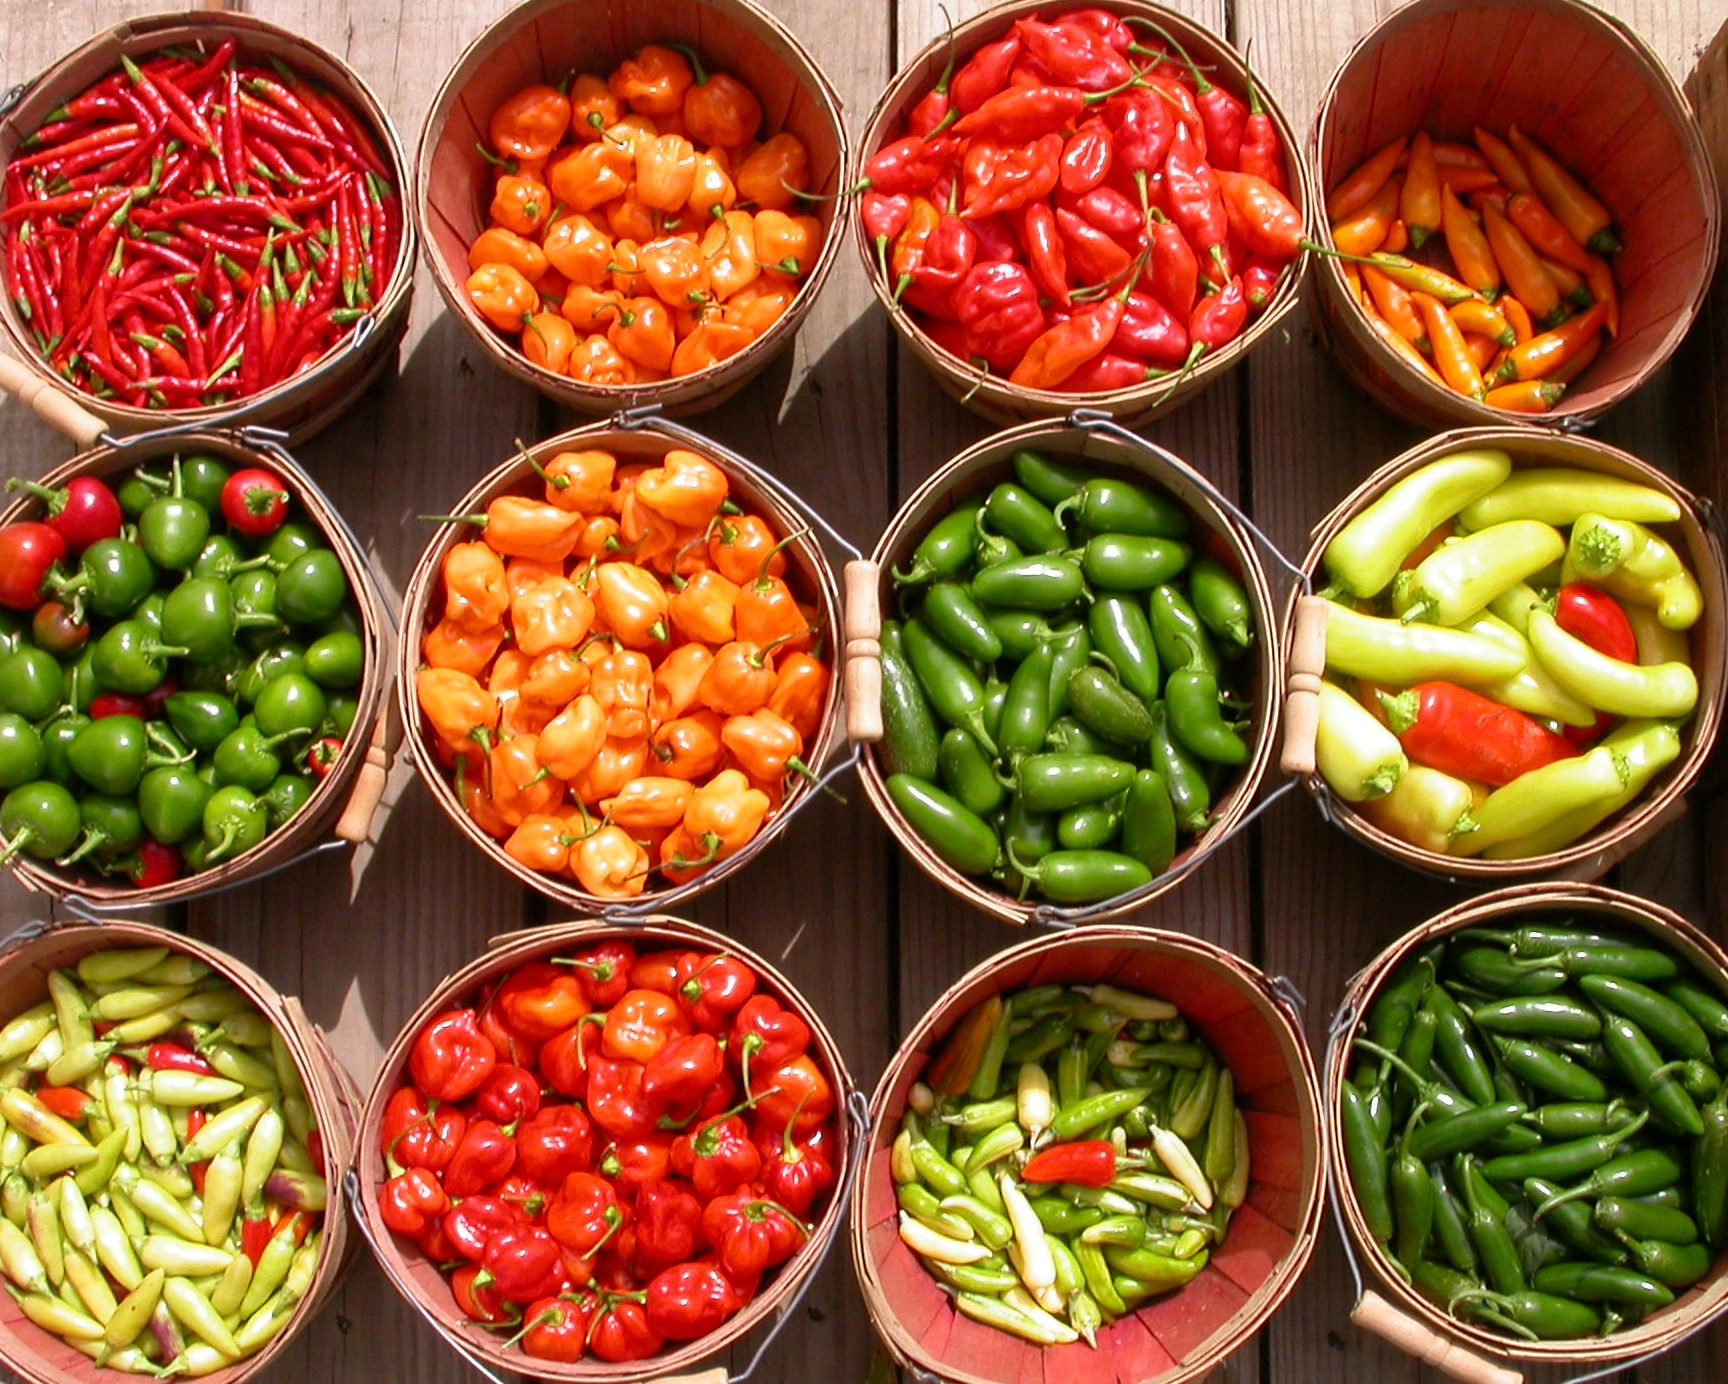 We bring fifteen varieties of hot peppers to the market, from mild Anaheim chiles to blazing hot Habanero!